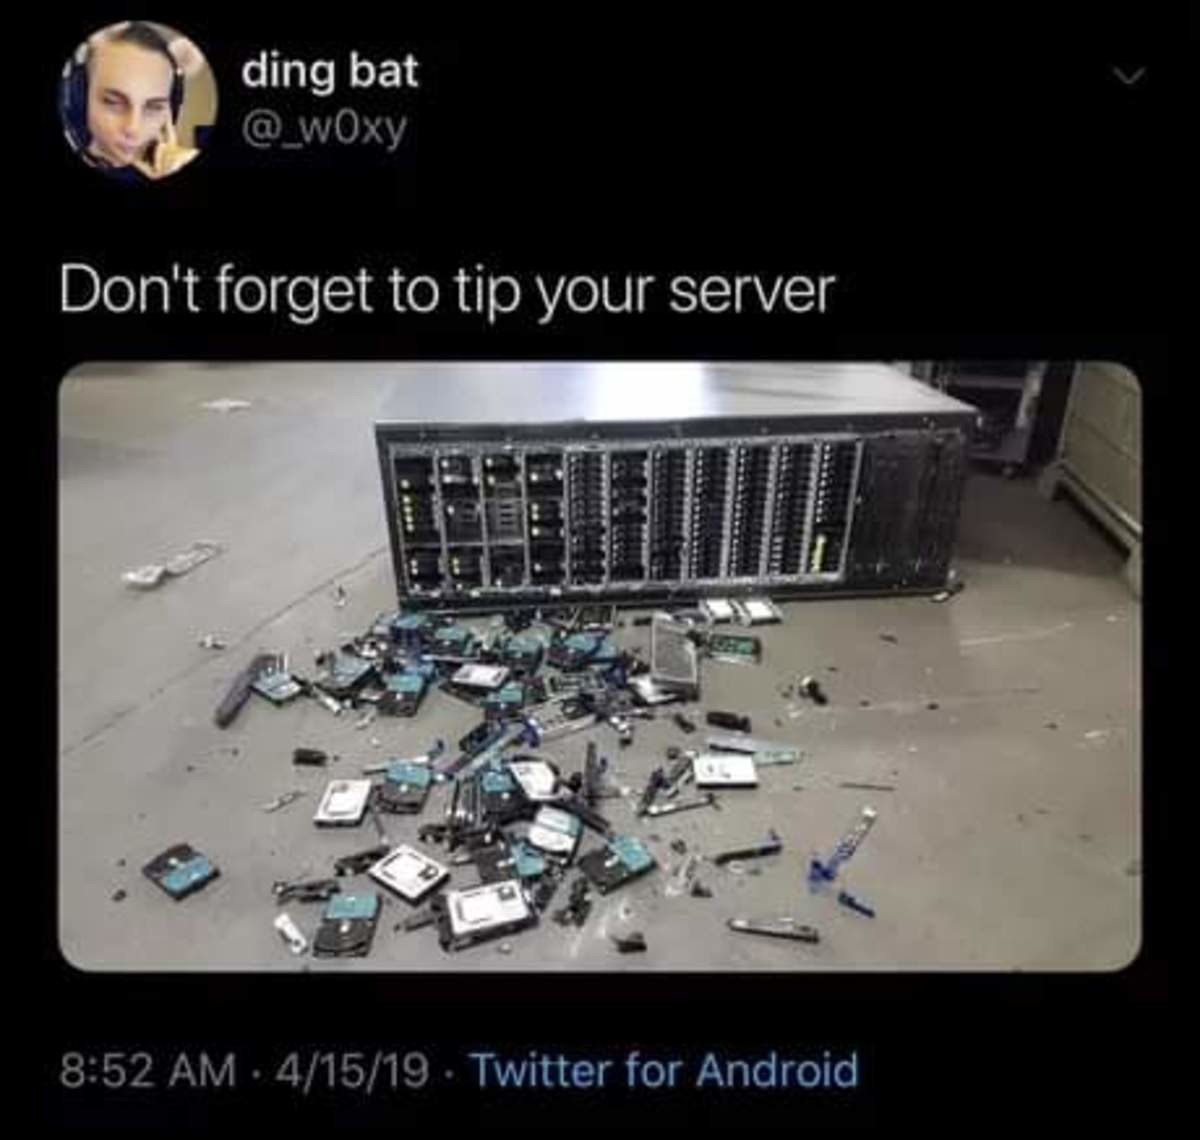 error 502. .. So if you have your own server, what can you do with it? Is it if you want your don't website?